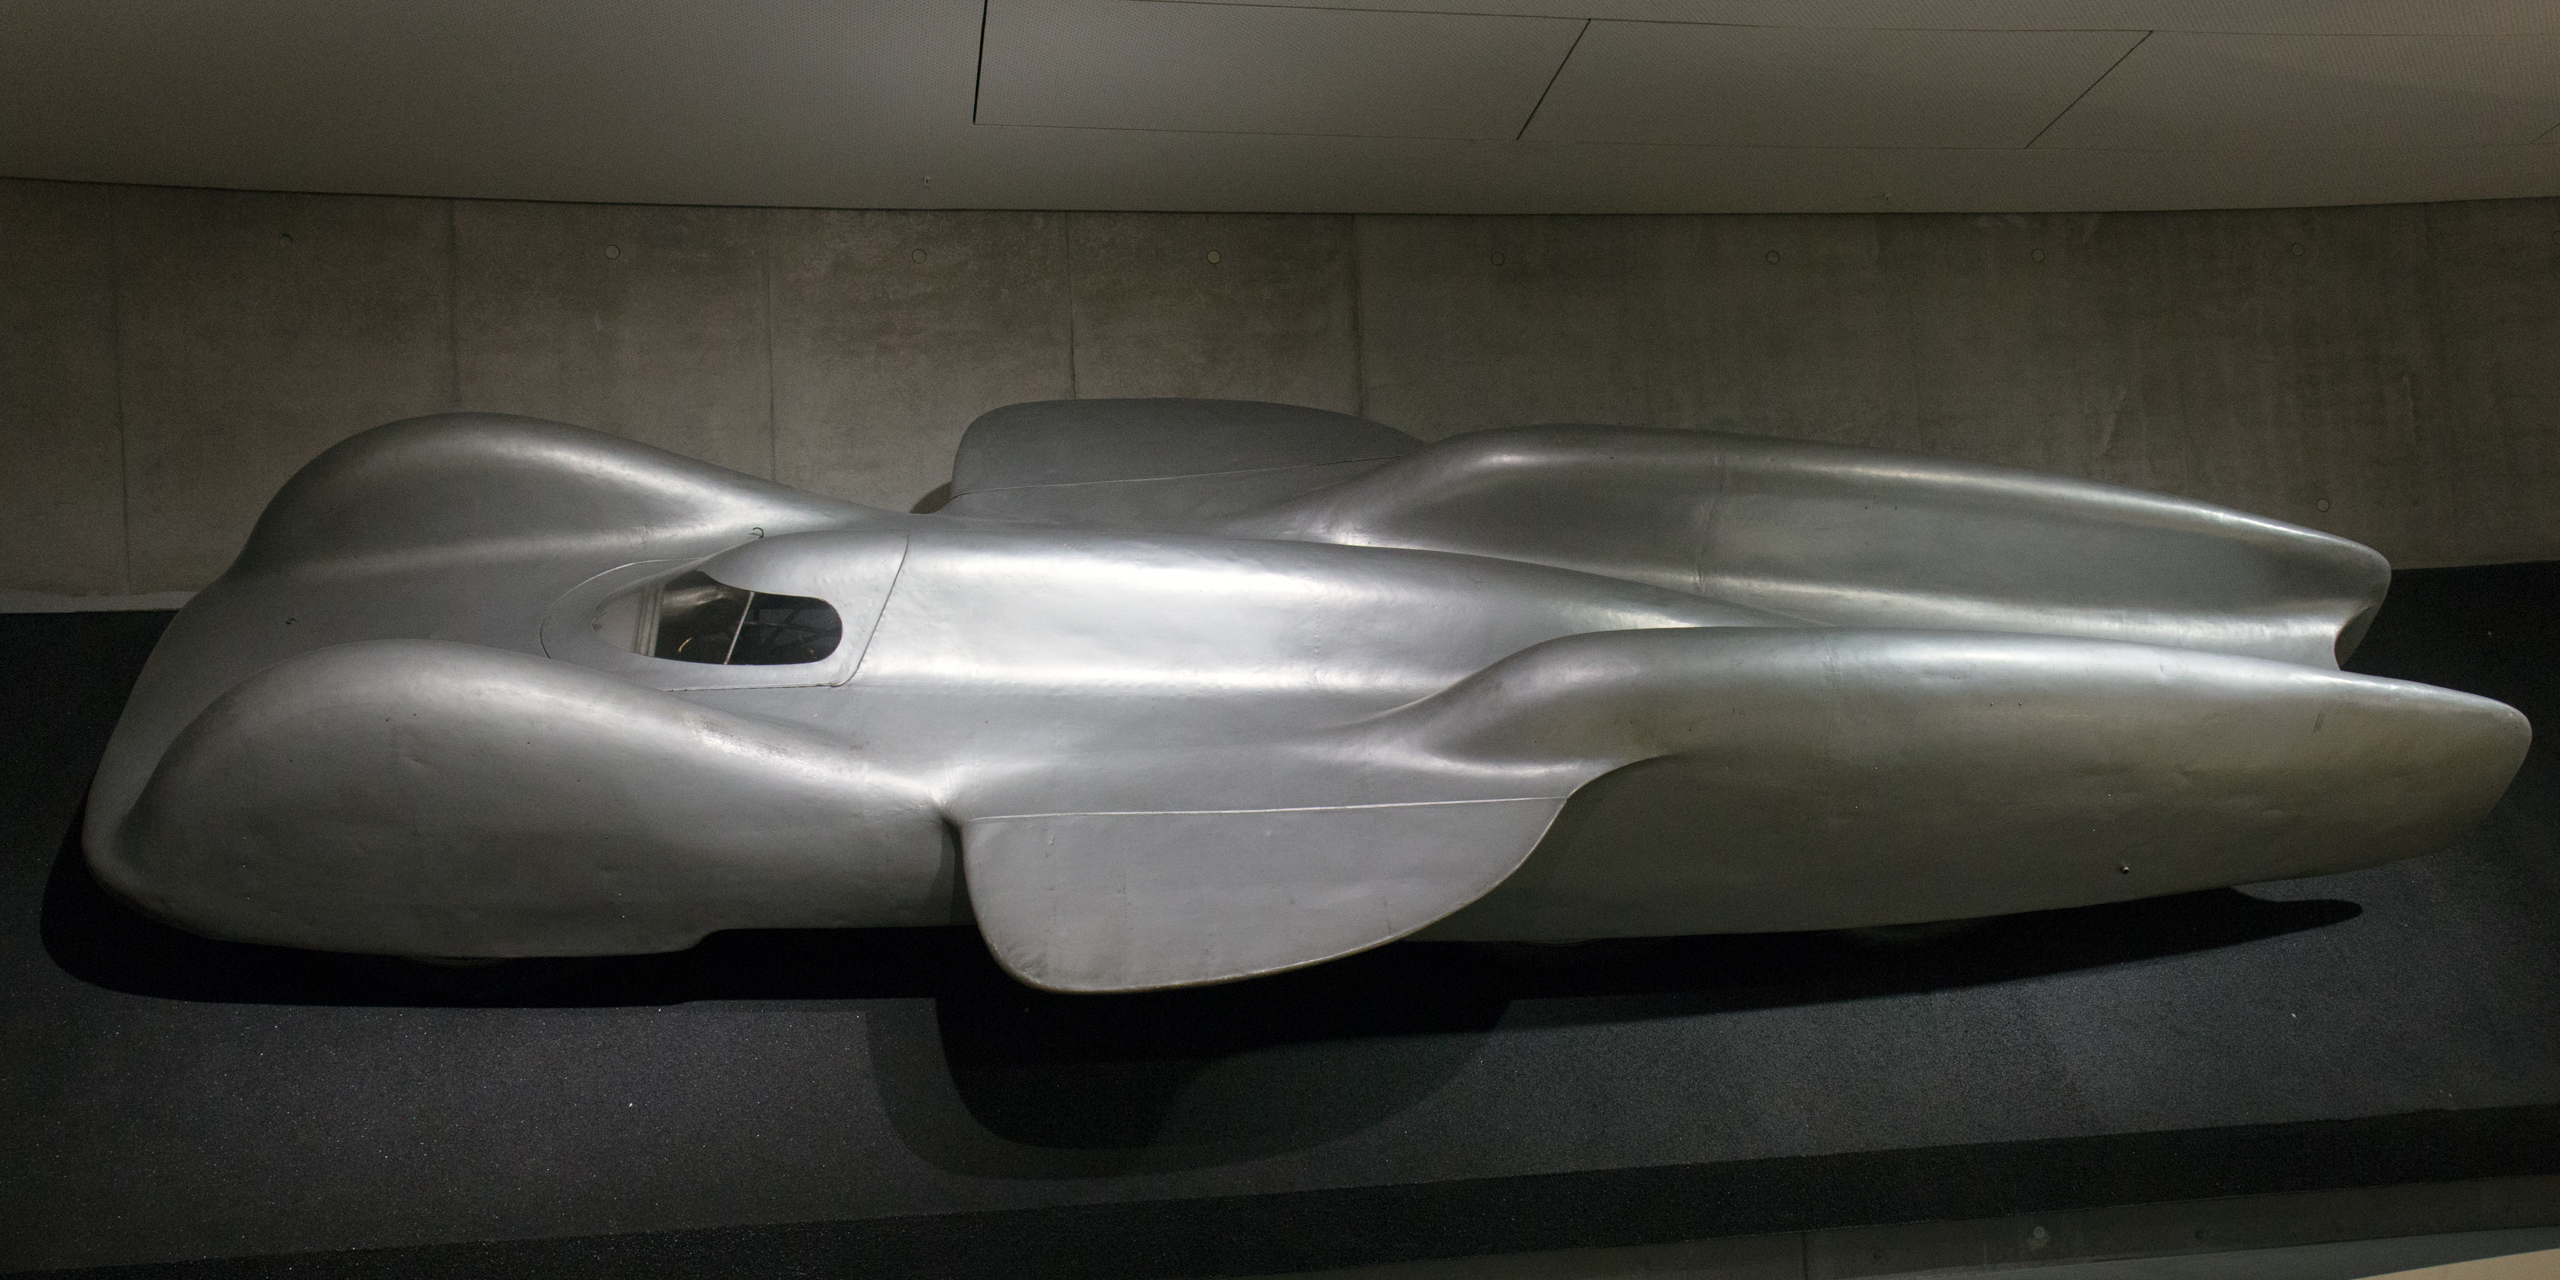 Mercedes-benz t80 photo - 3